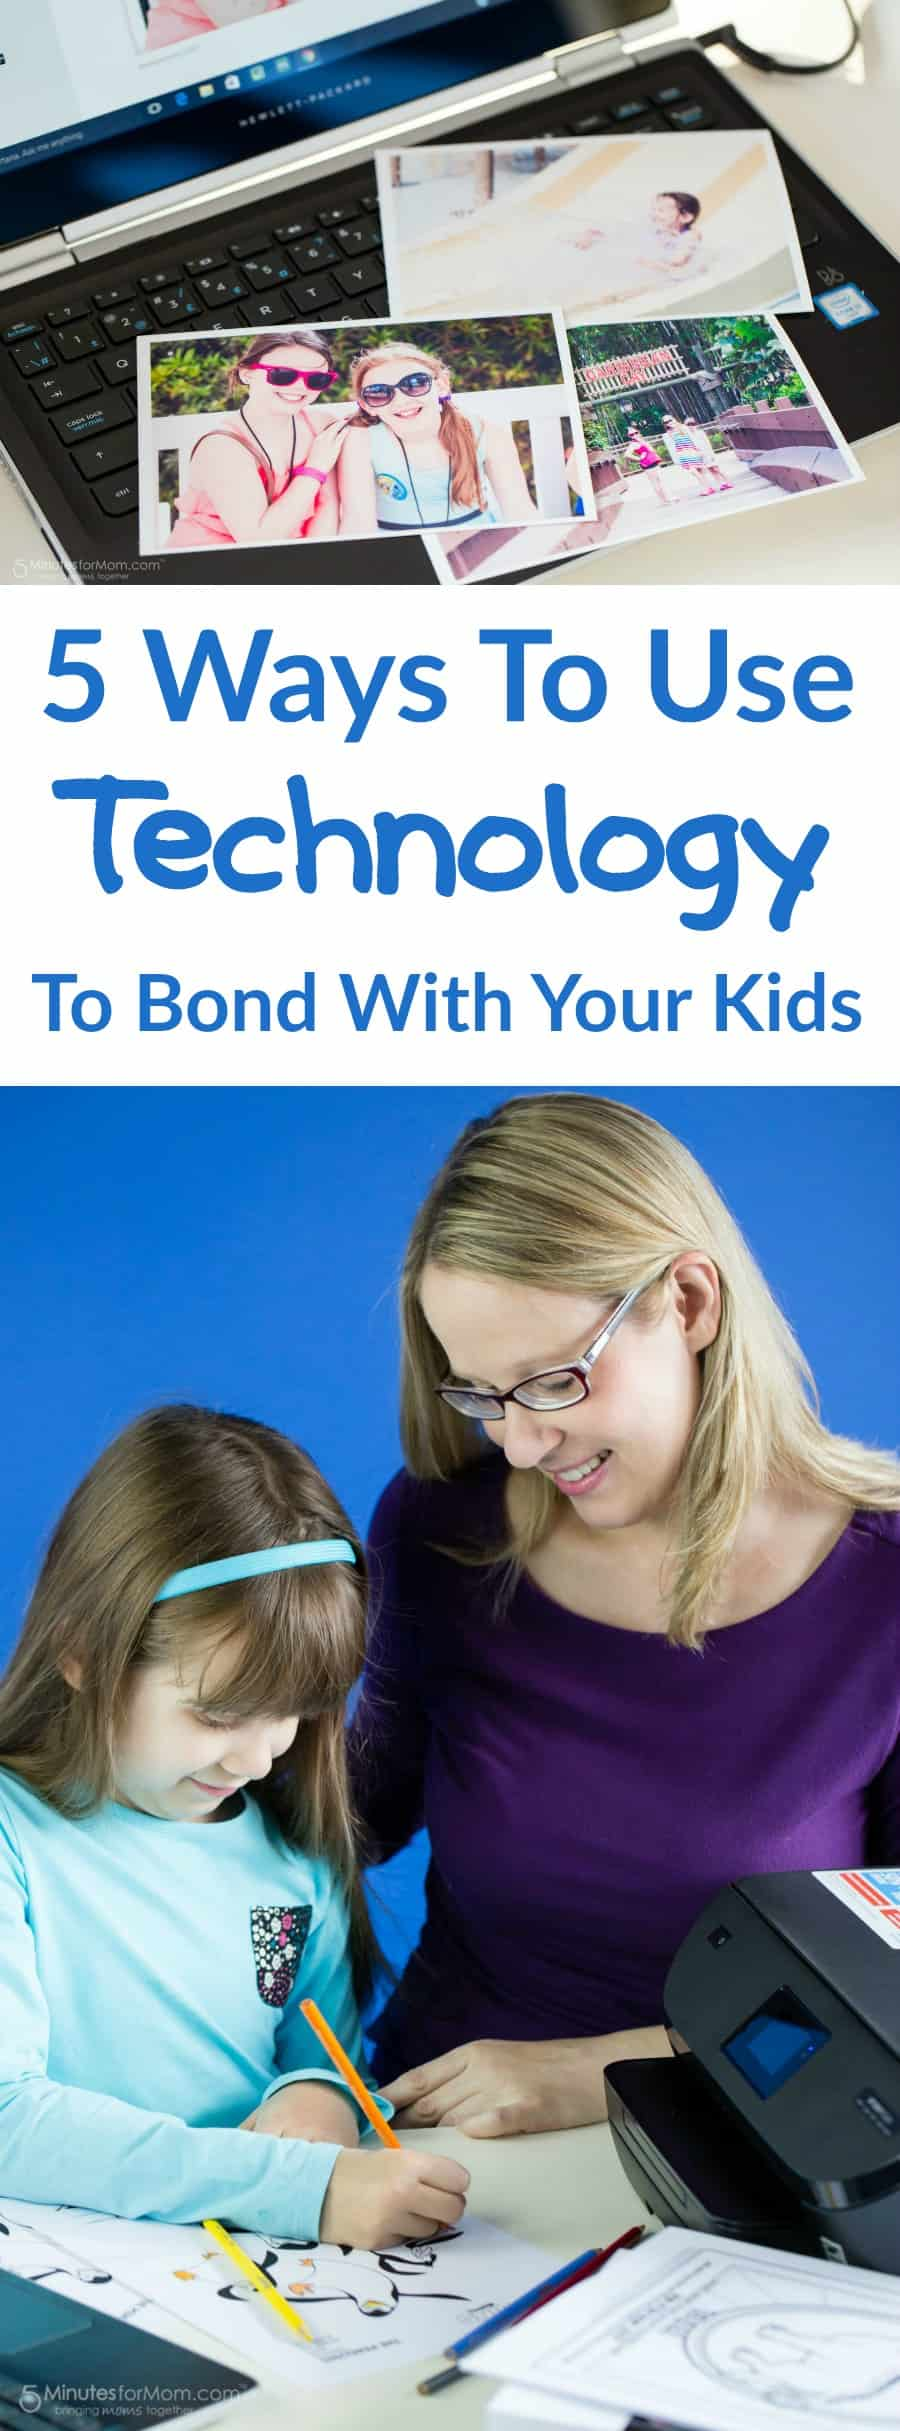 5 Ways to Use Technology to Bond with Your Kids